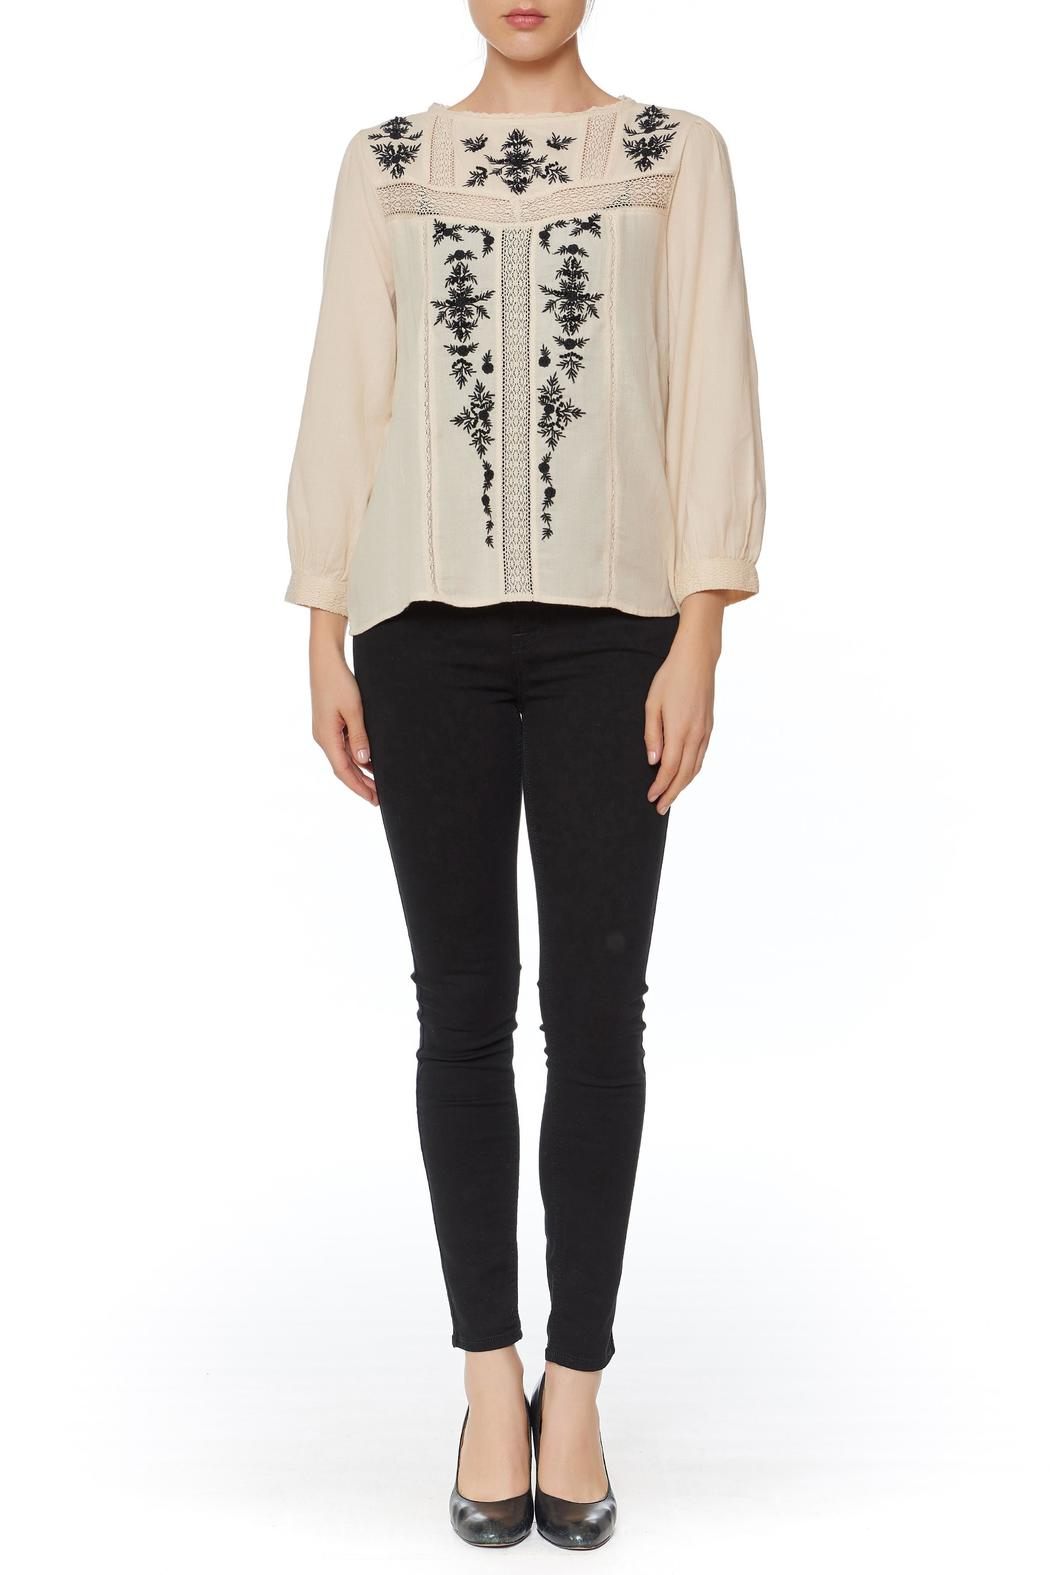 Joie Oakes Blouse - Main Image